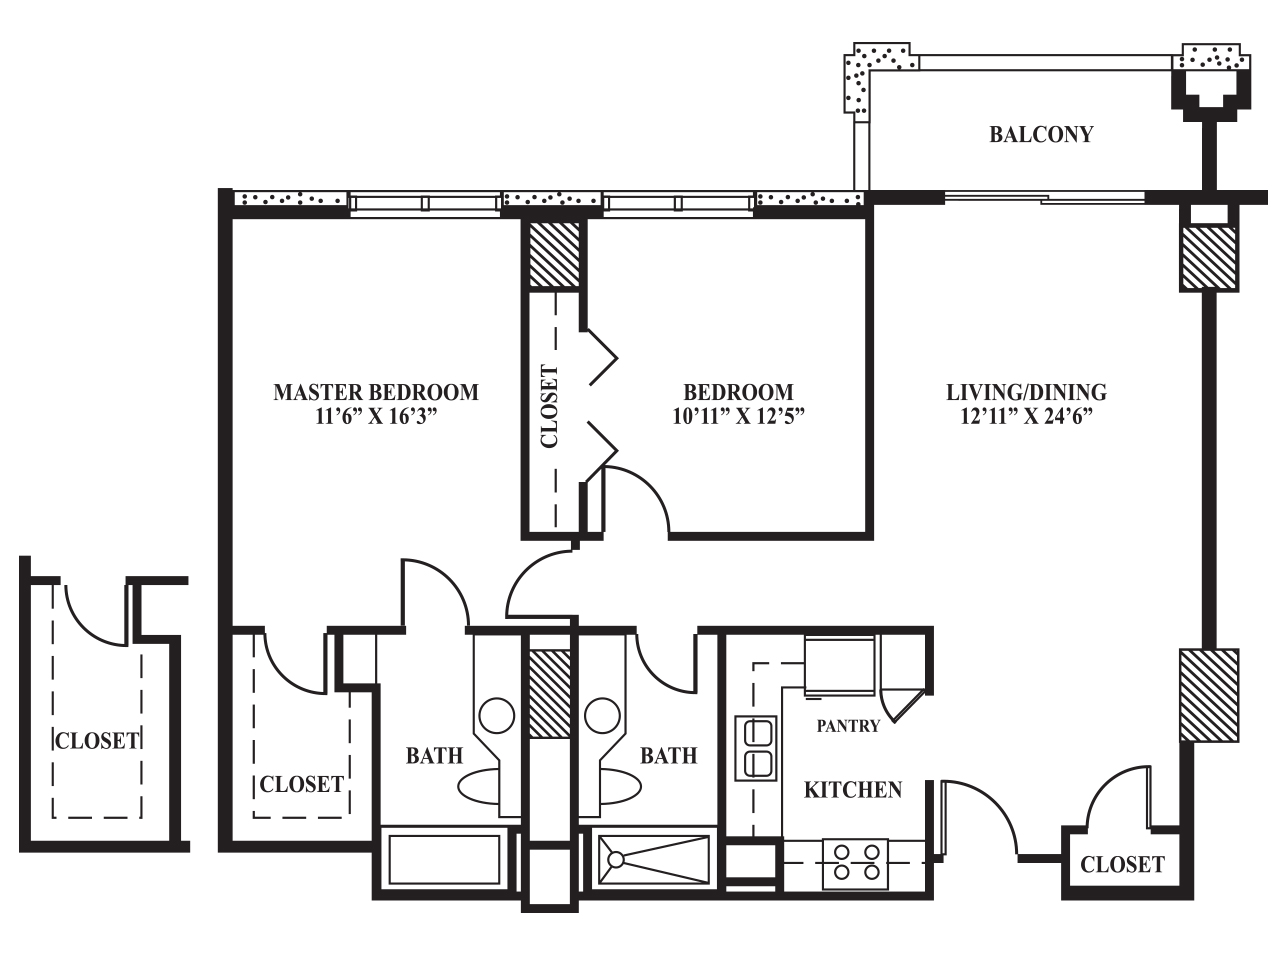 floor plan d 1 034 sq ft the towers on park lane select a floor plan